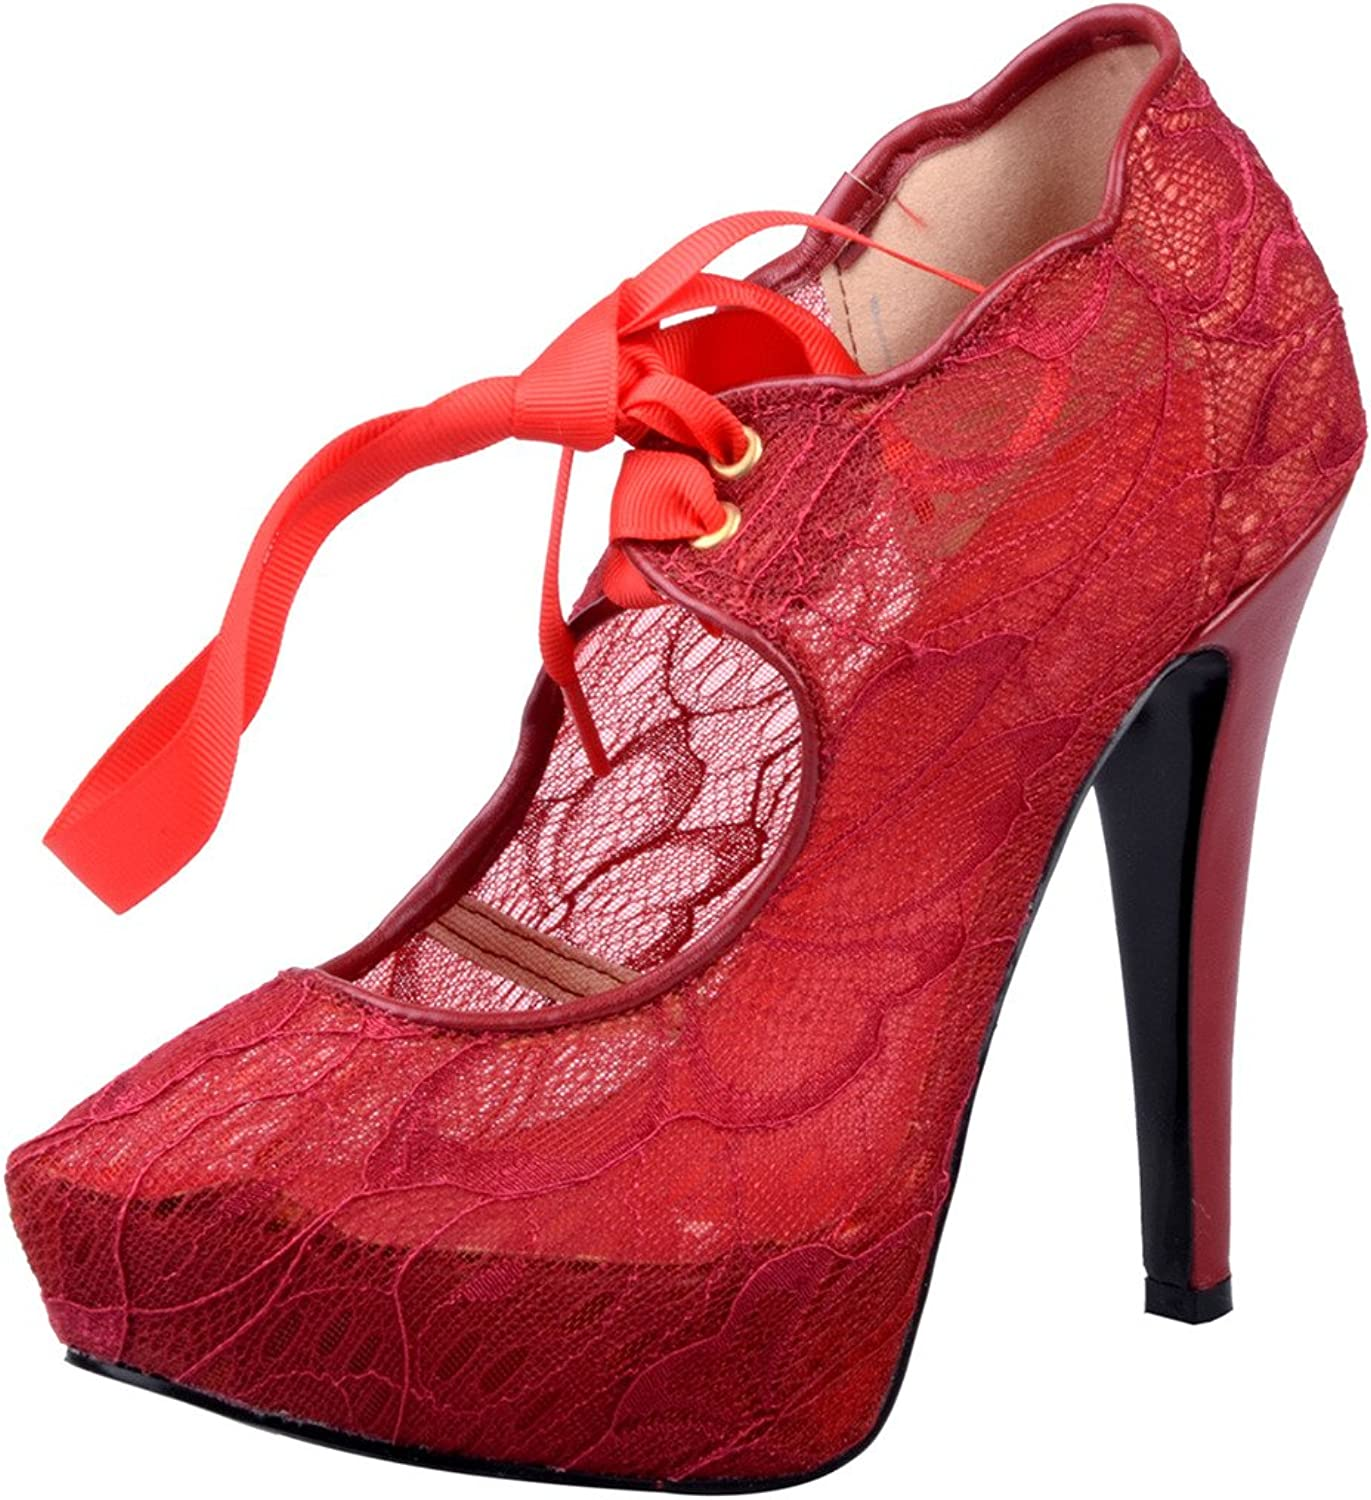 Calaier Womens Cashy Sexy Ladies Designer High Heel Round Toe 14CM Stiletto Lace up Pumps shoes